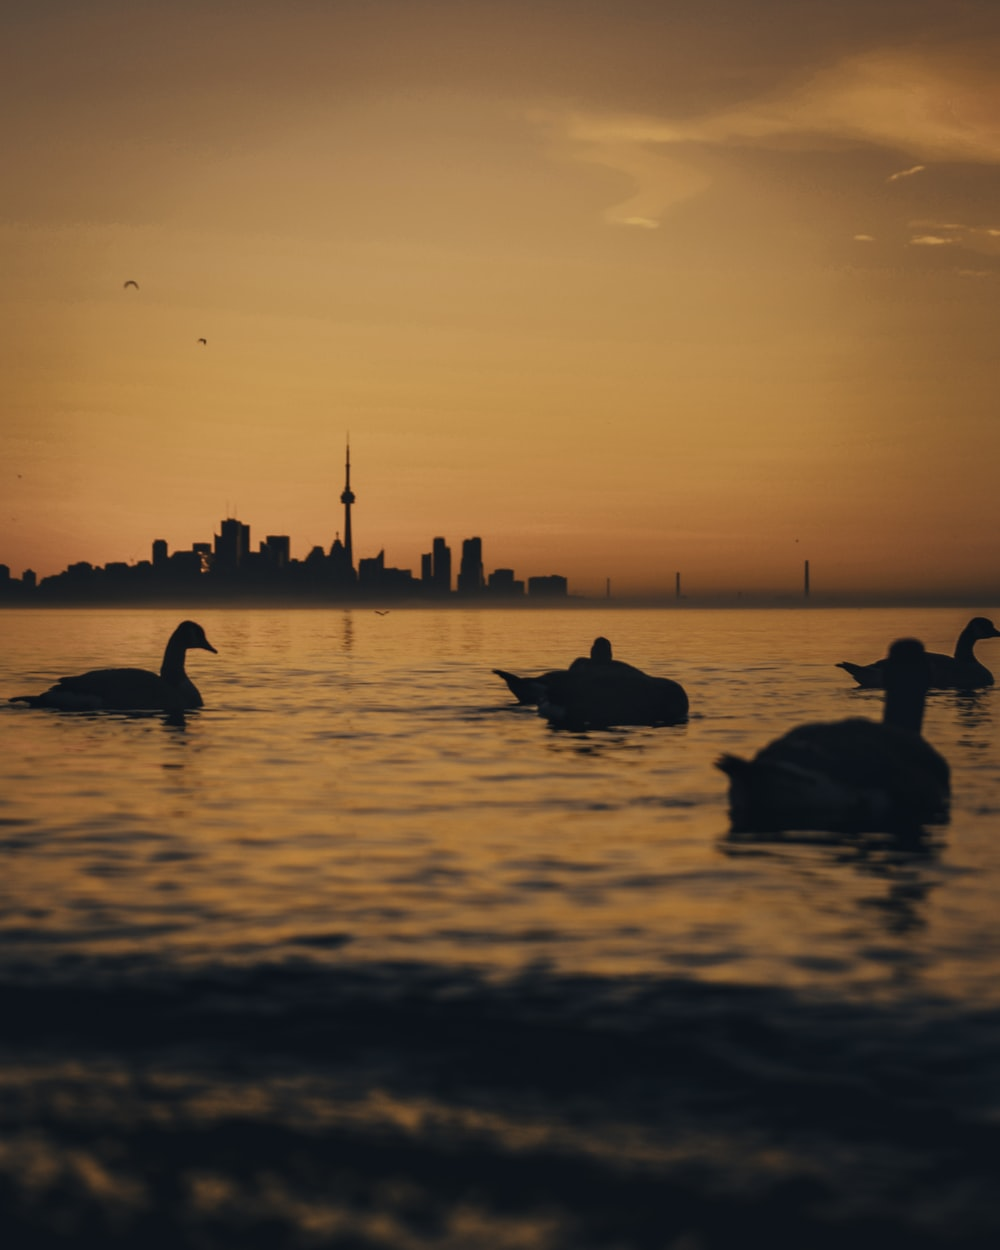 silhouette of birds on water during sunset